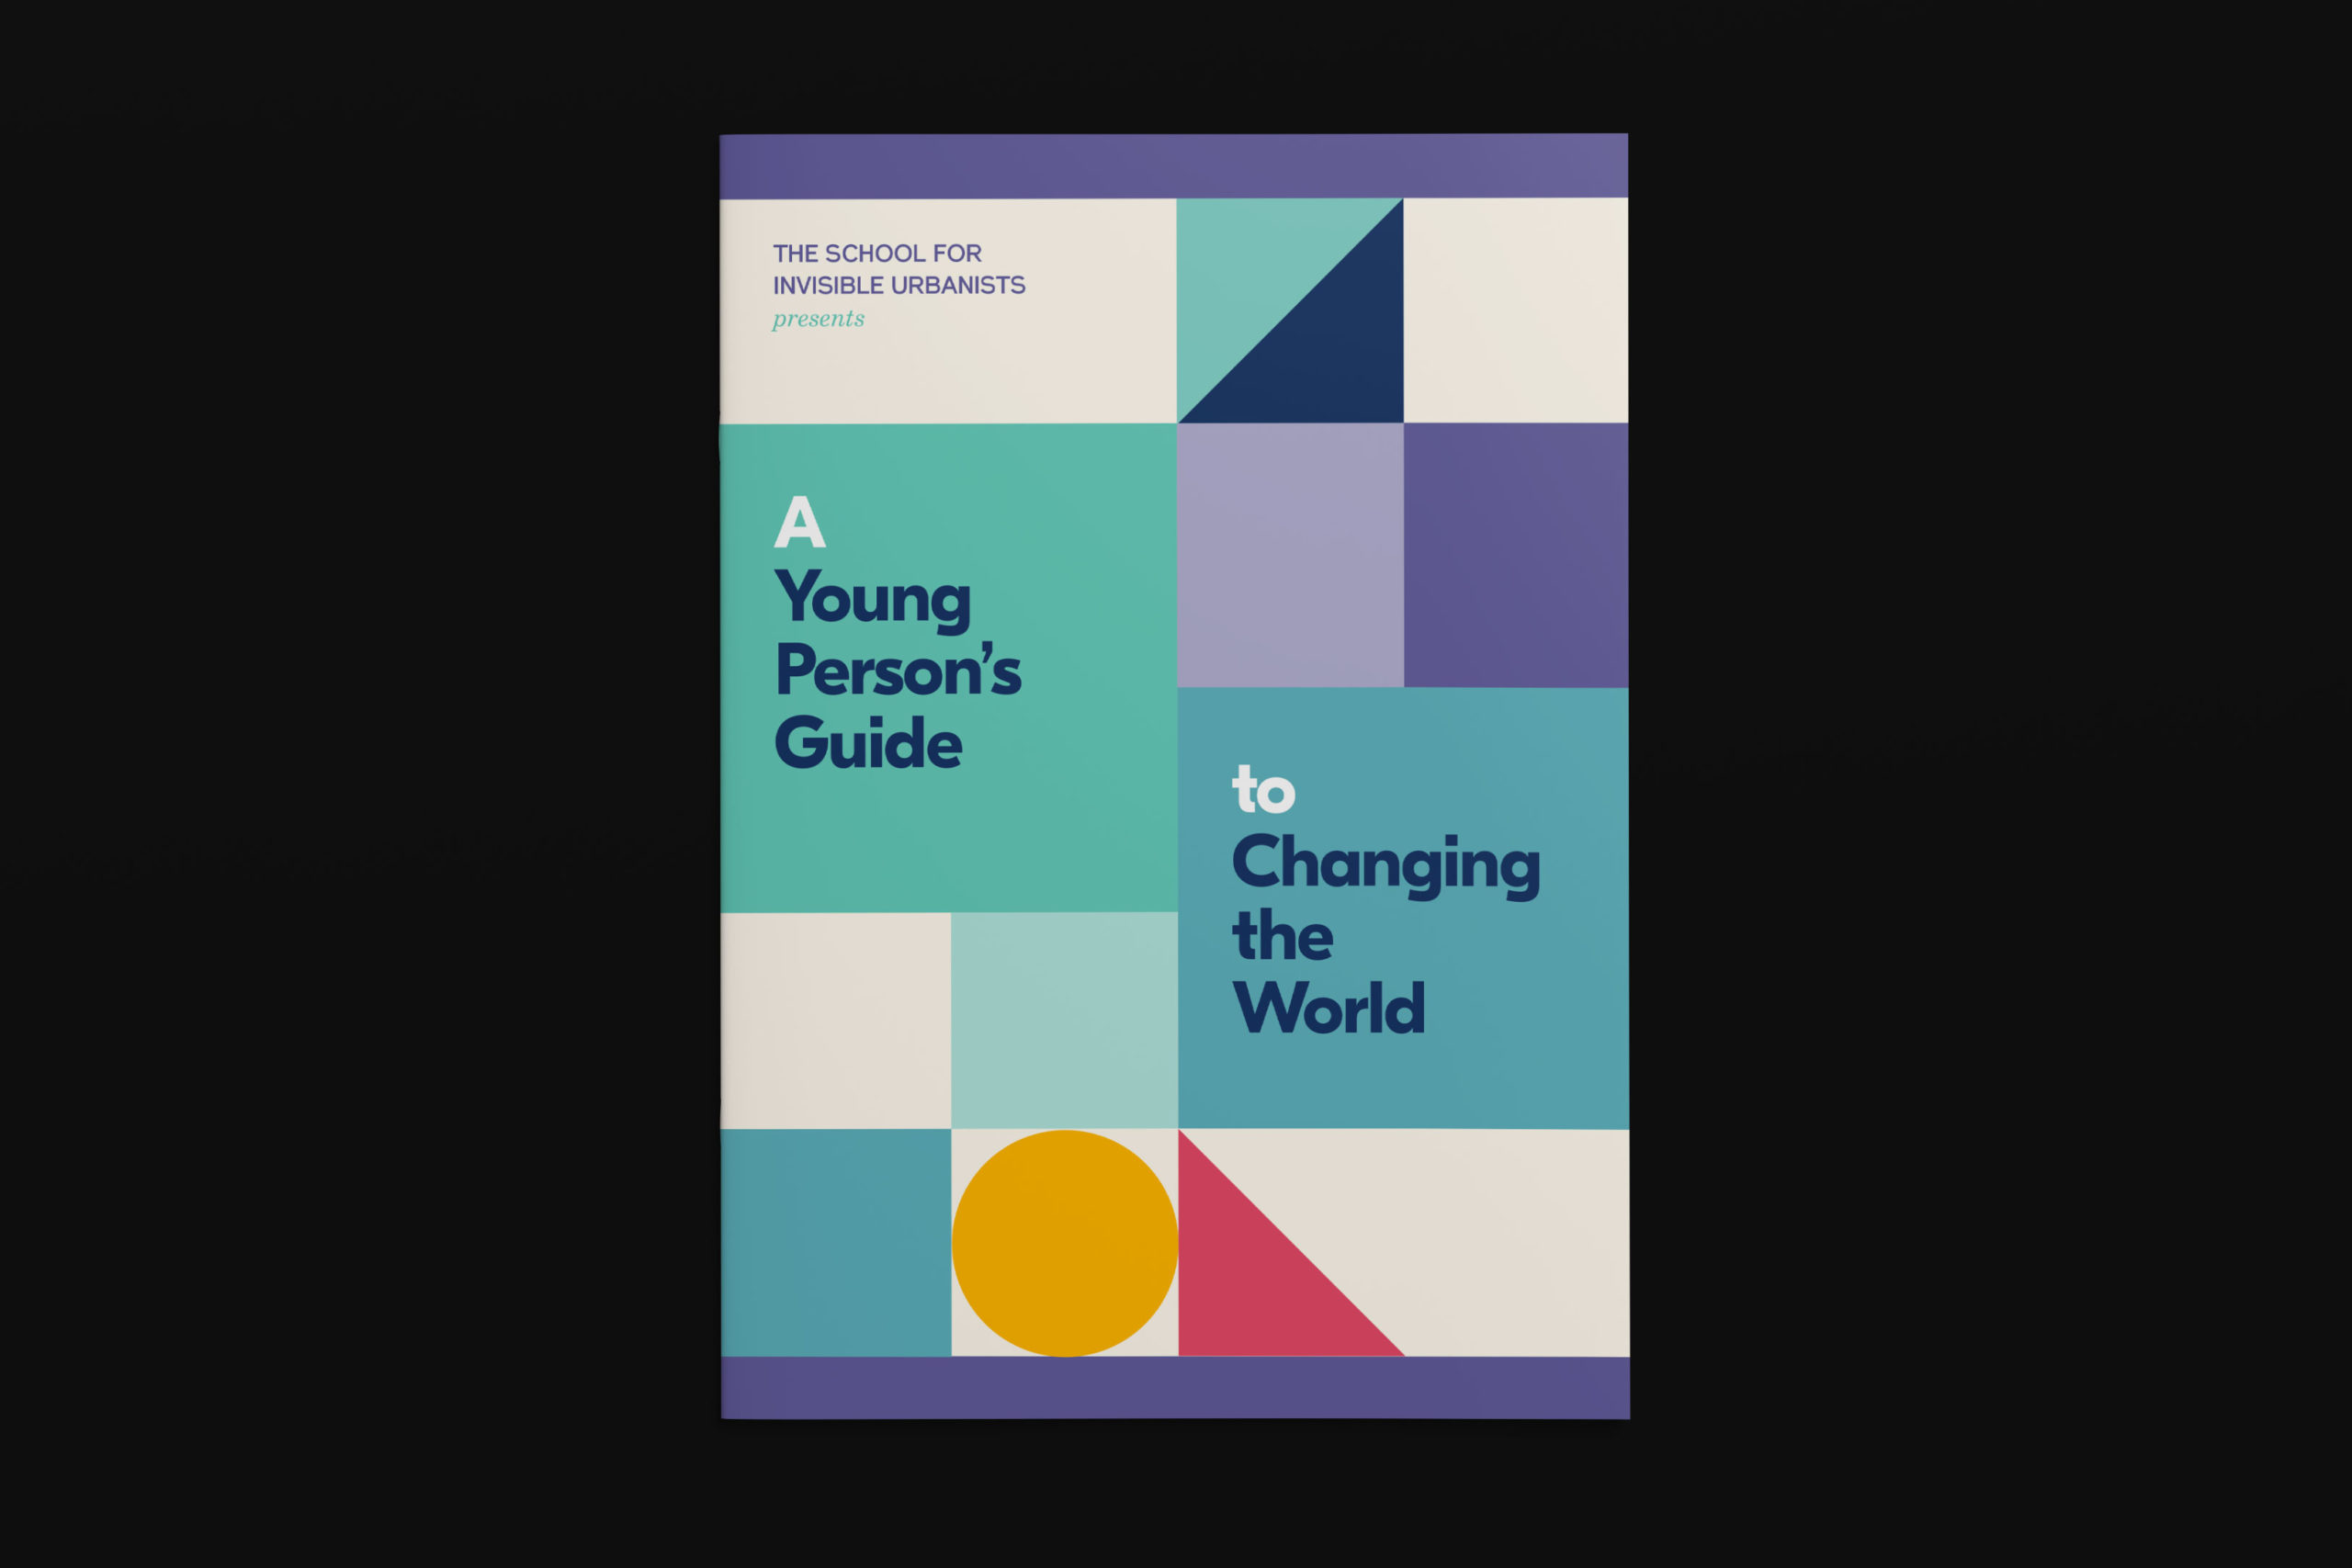 TSFIU_A-Young-Persons-Guide_Cover_wide